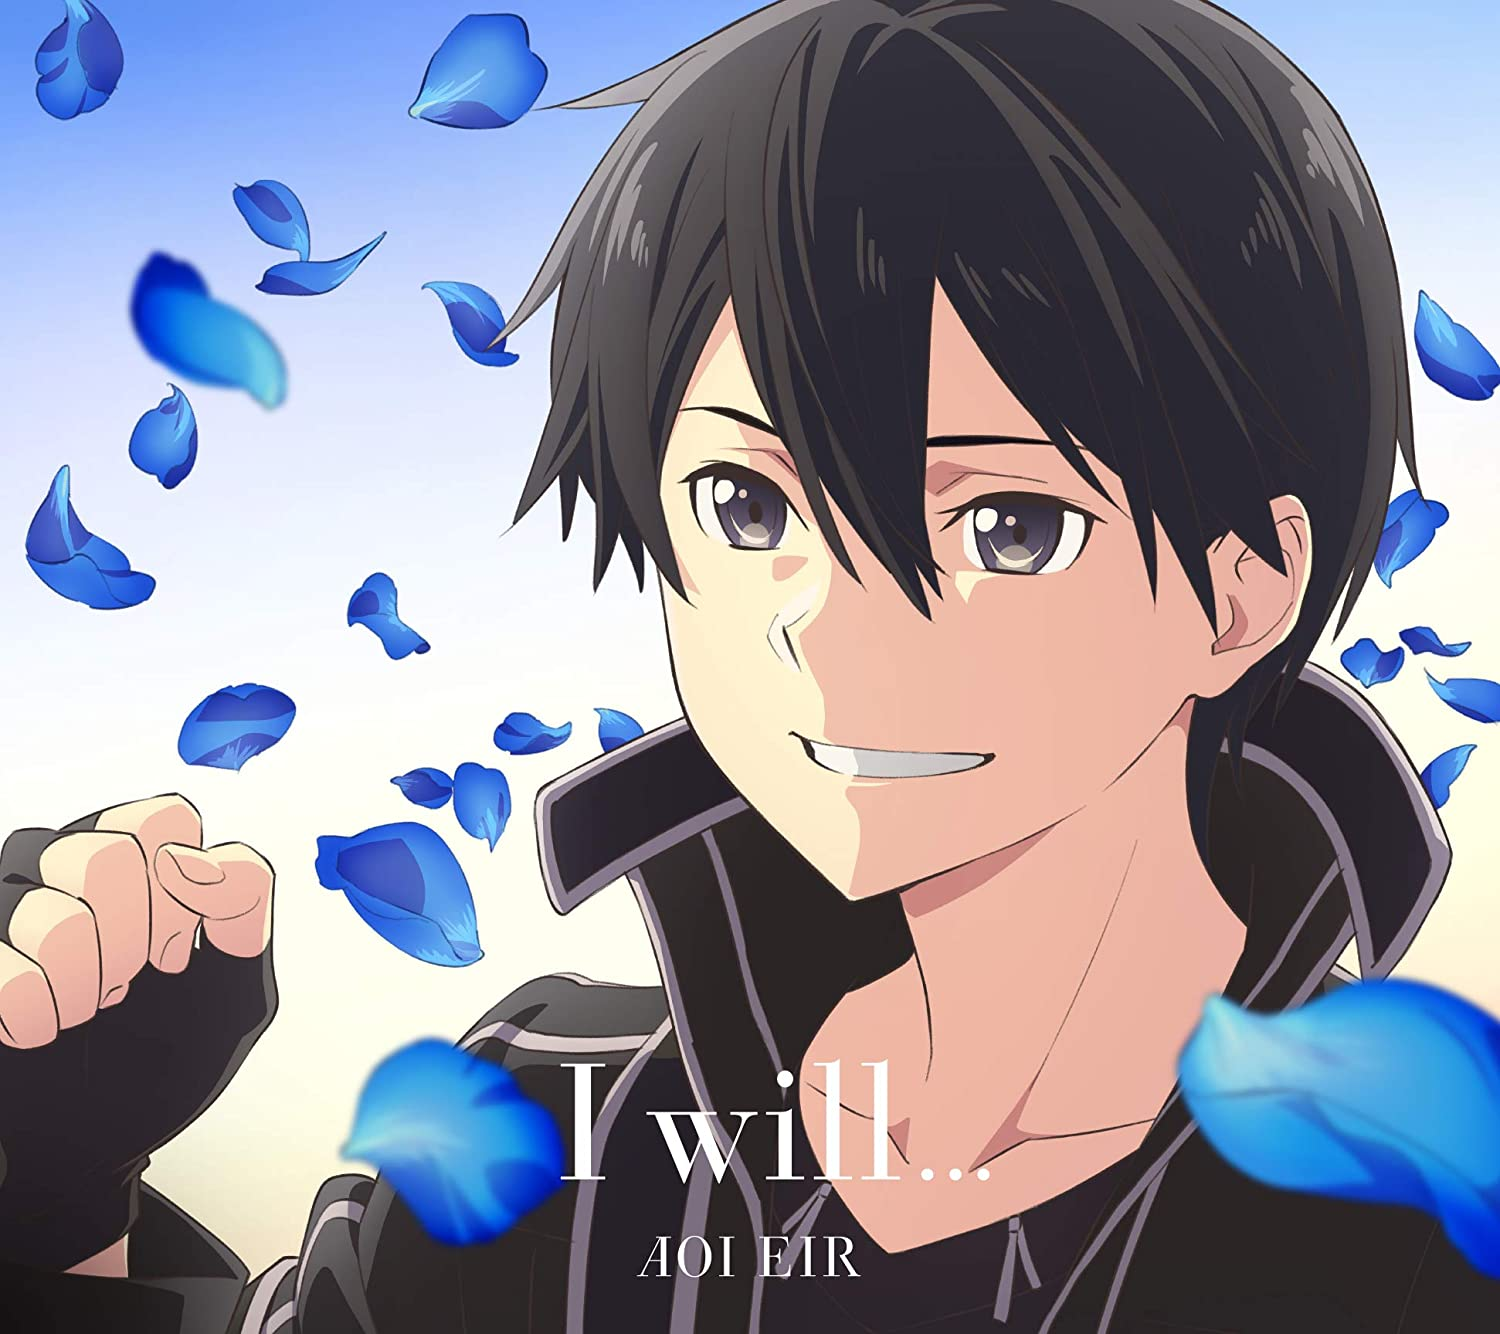 Eir Aoi – I will… (Single) SAO Alicization War of Underworld S2 ED